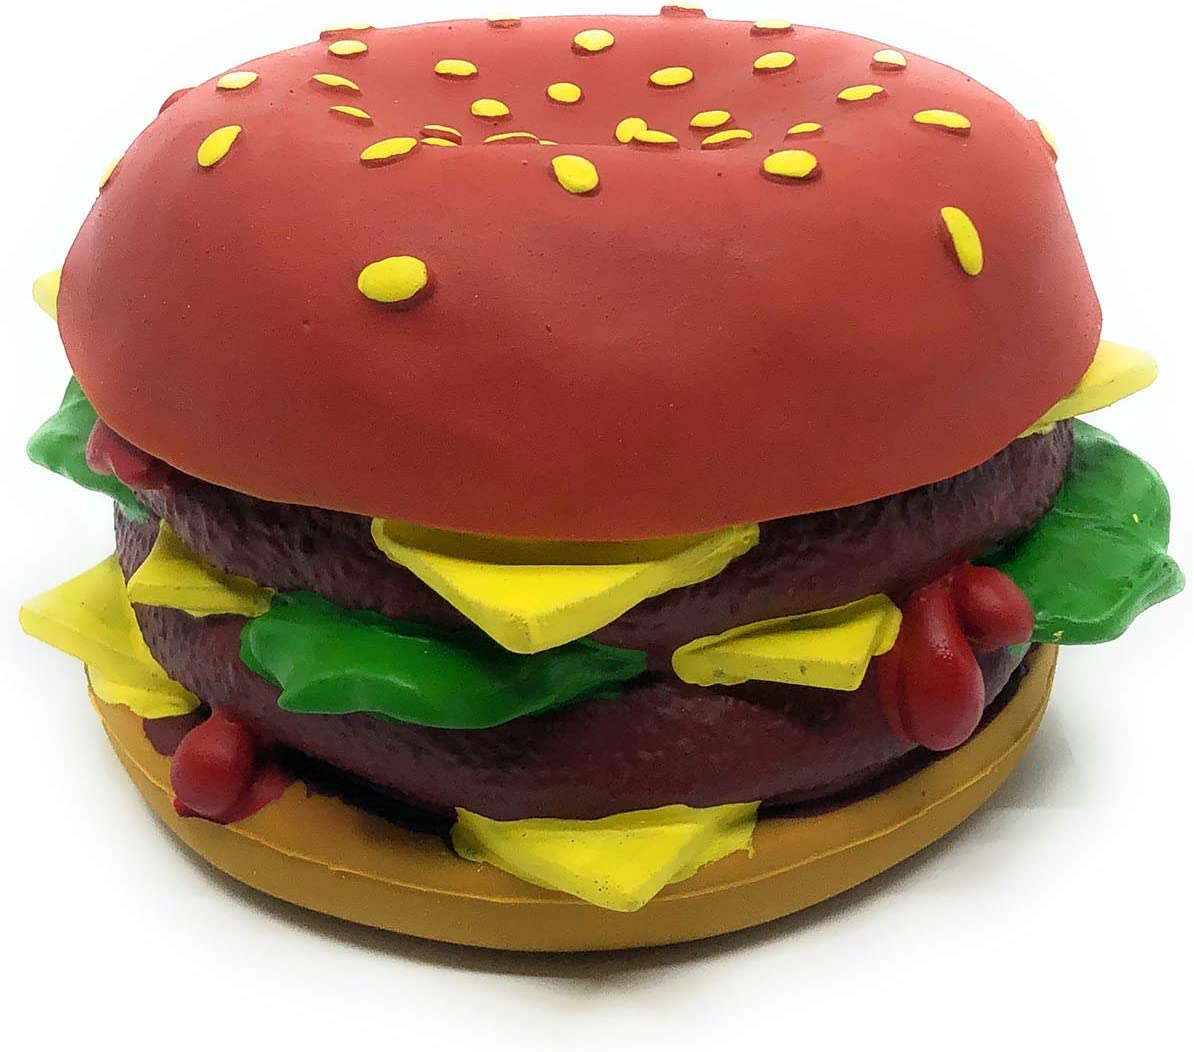 XL Cheeseburger Dog Toy - Big Squeaky Dog Toy - Natural Rubber (Latex) - Large Breed Dogs - 5.5